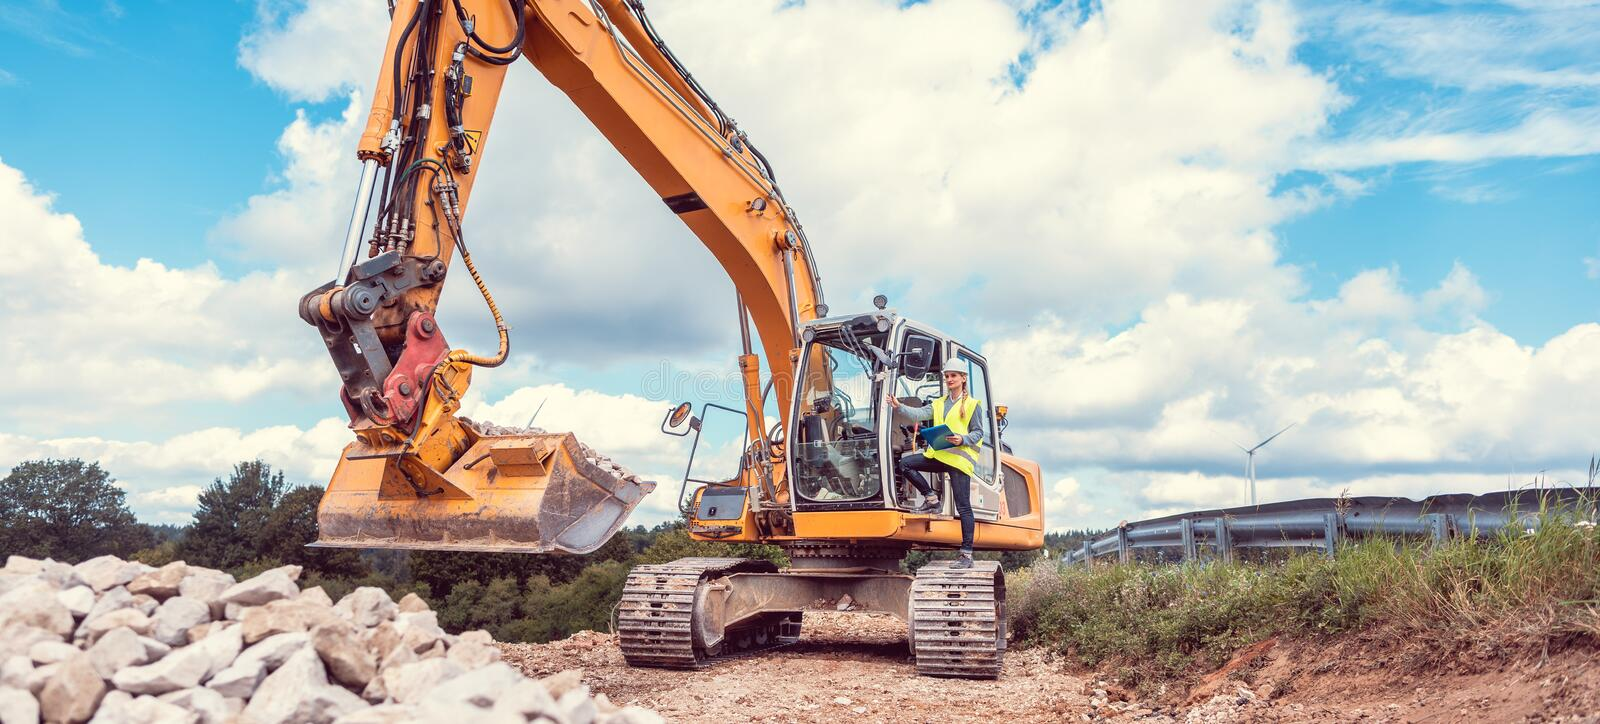 Woman construction worker with excavator on sit stock photography